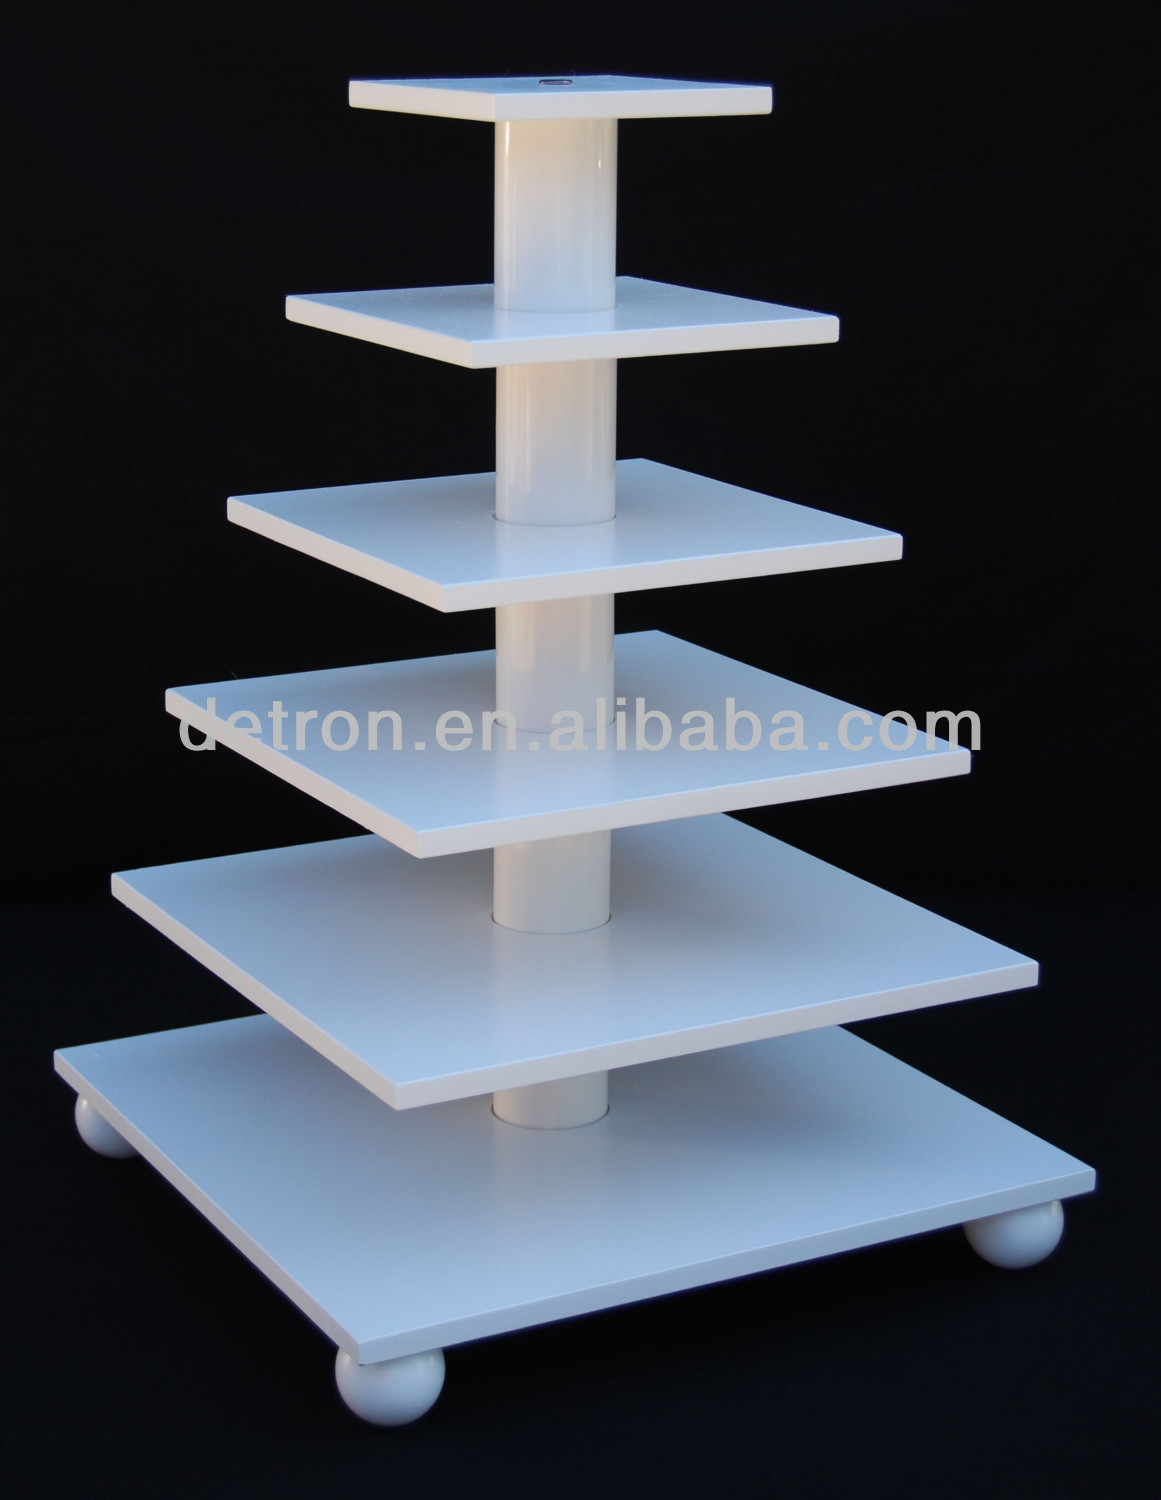 Adjustable 6 tier cupcake display stand